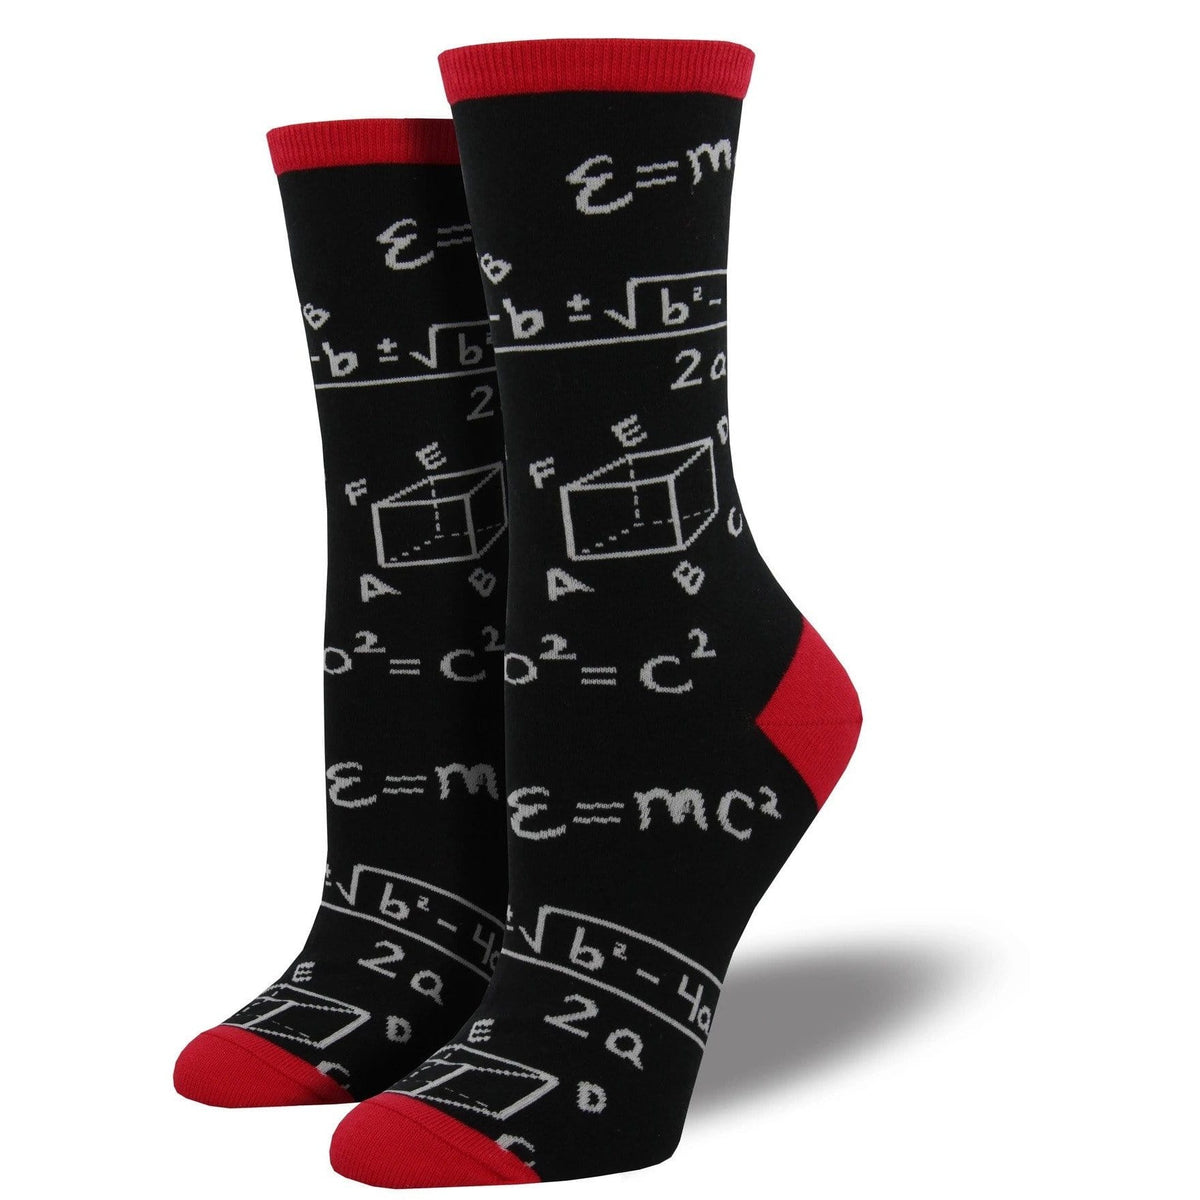 Math socks - black - womens Sock Smith Clothing/Accessories